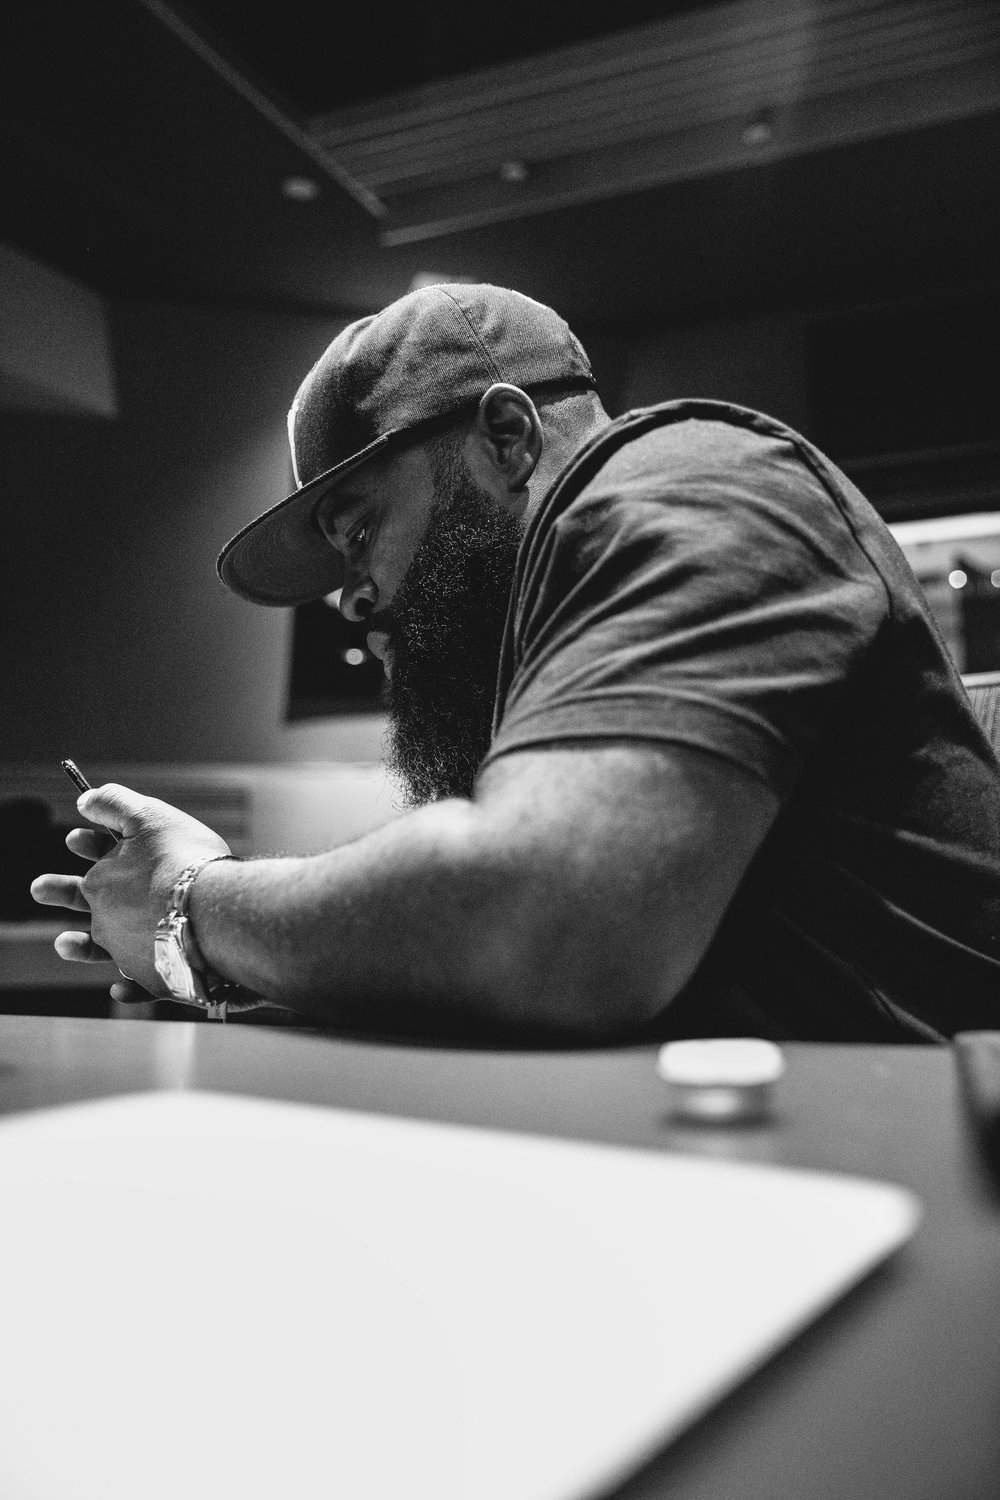 THE MAKING OF - Black Thought and Salaam Remi in the studio